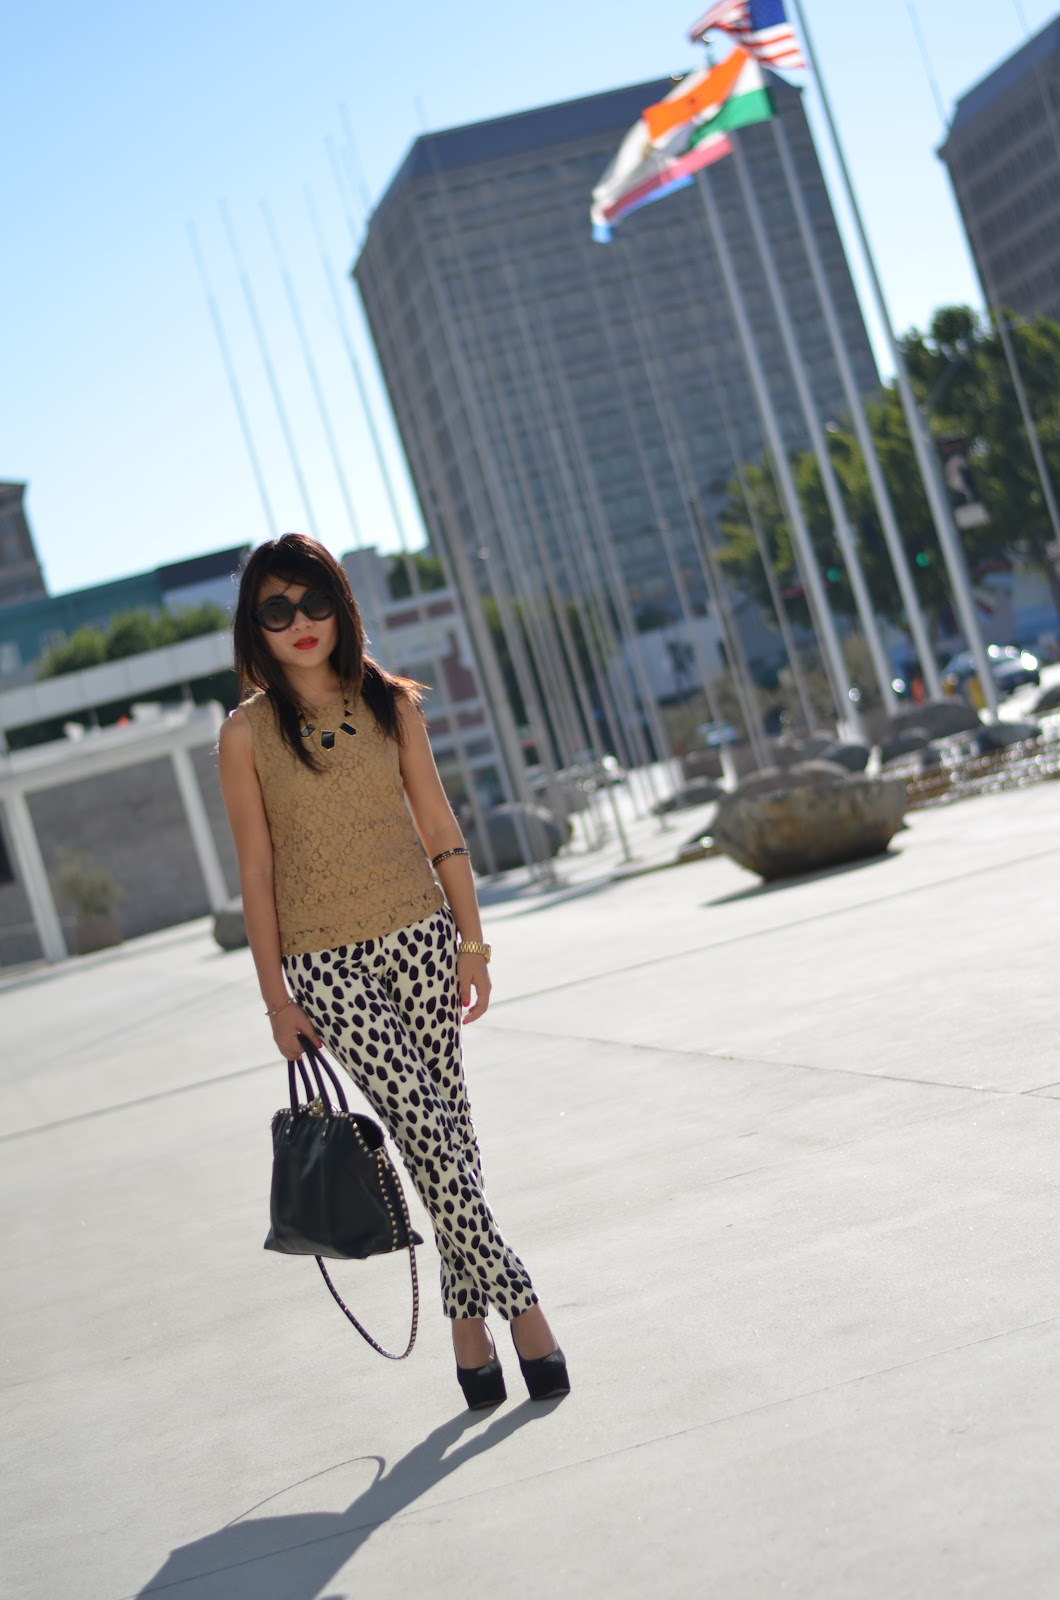 prada baroque sunglasses, banana republic madmen gold lace shell, banana republic mad men gold lace shell, banana republic lace shell, hm dalmatian pants, sam edelman quinn, valentino black rockstud purse, valentino rockstud purse, valentino black rockstud dome purse, valentino rockstud dome purse